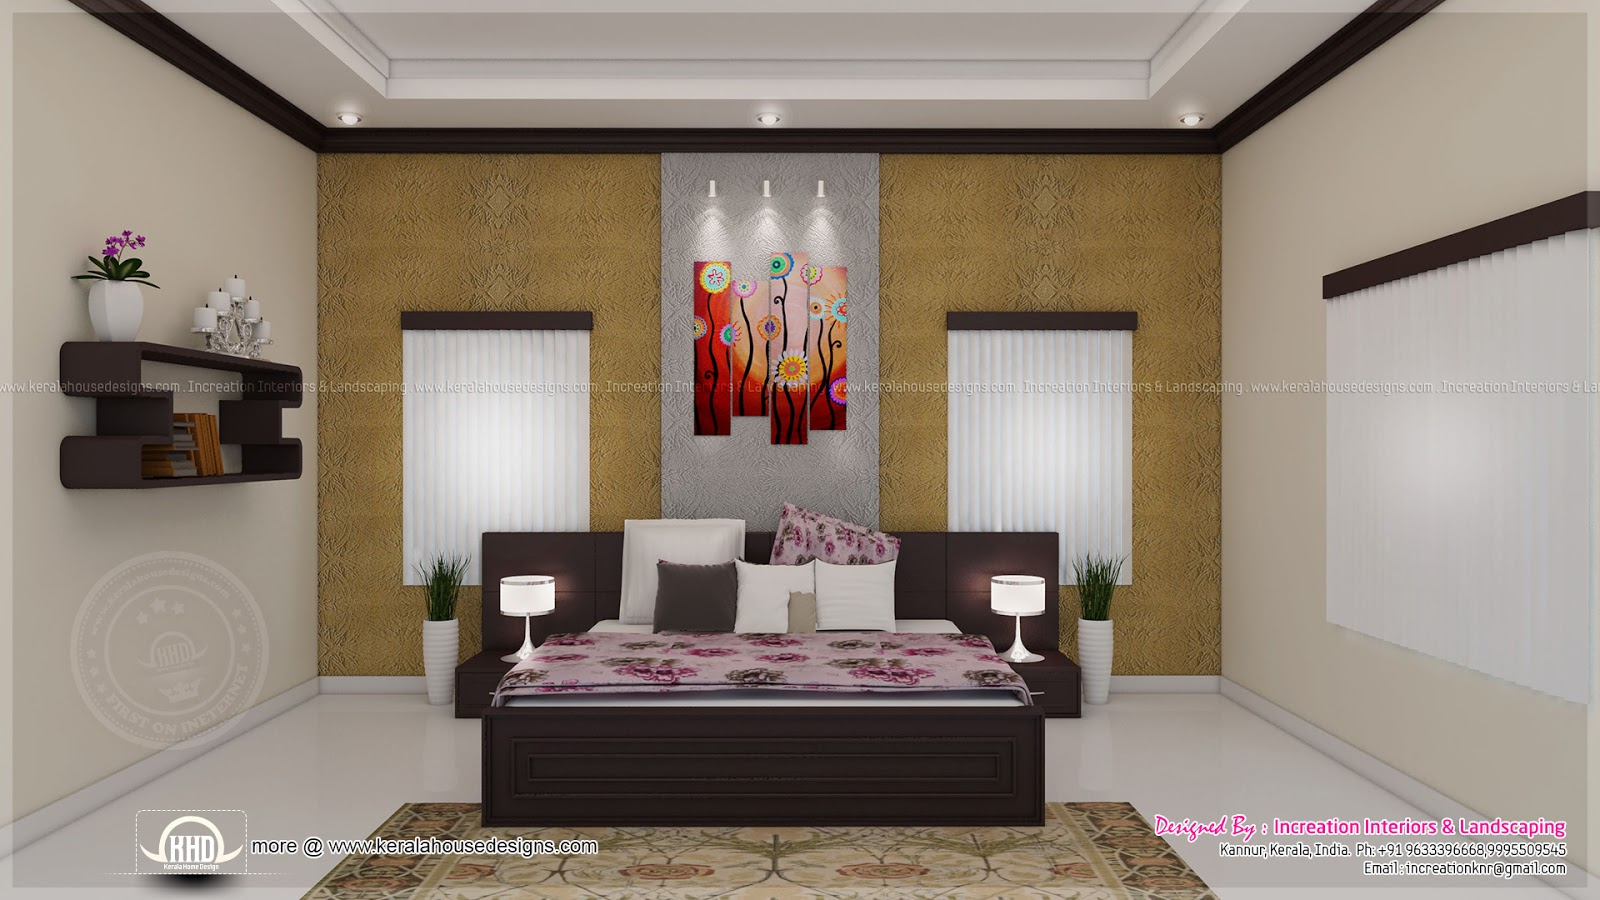 House interior ideas in 3d rendering kerala home design for Home interior design room